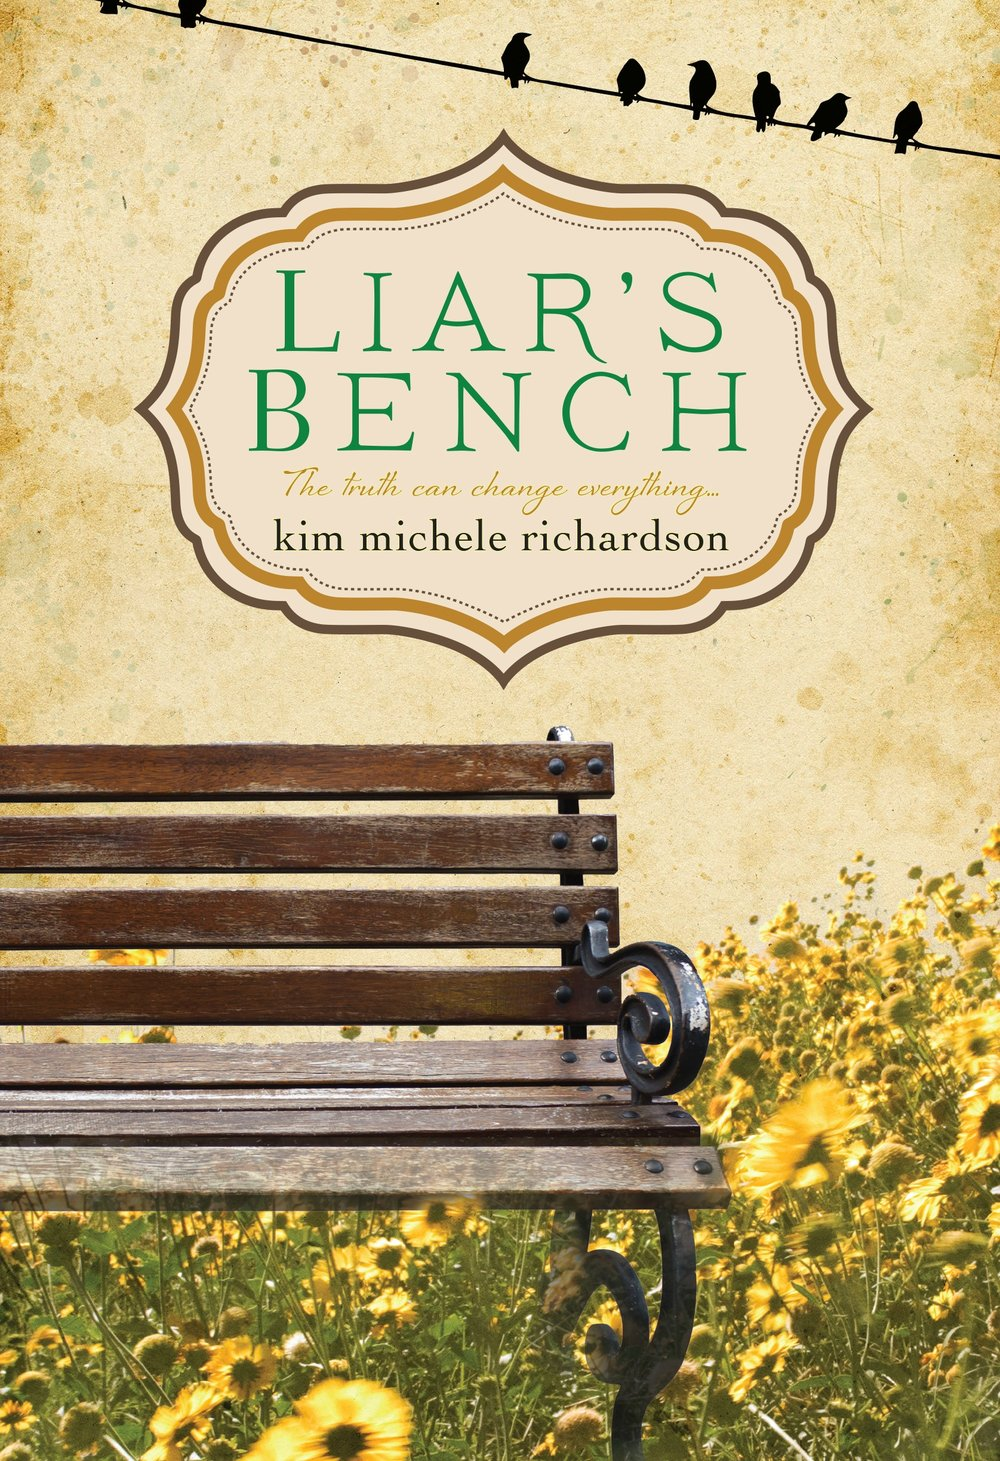 LIARS BENCH OFFICIALMY FB  COVERliars bench.jpg